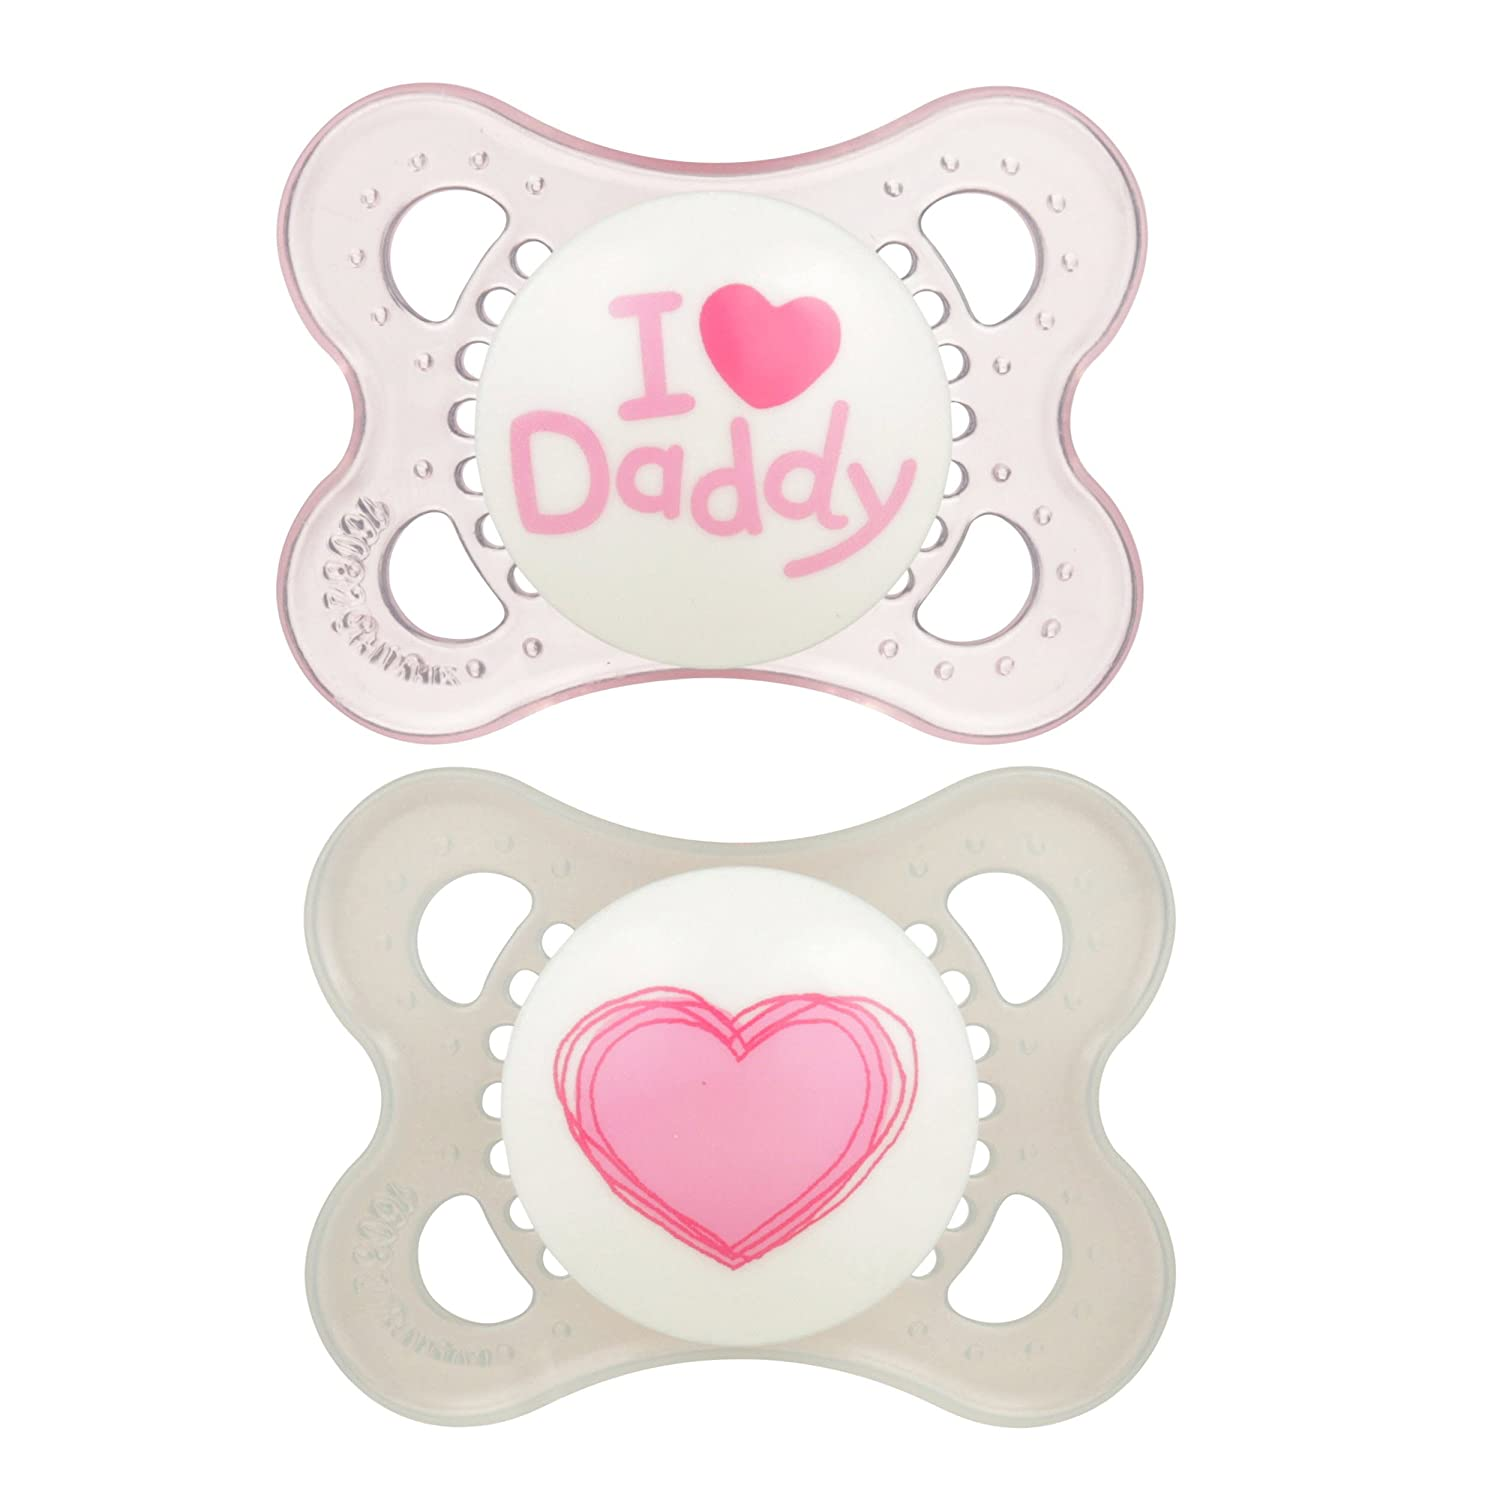 MAM Pacifiers, Baby Pacifier 0-6 Months, Best Pacifier for Breastfed Babies, 'I Love Daddy' Design Collection, Girl, 2-Count 1134-012-0-1